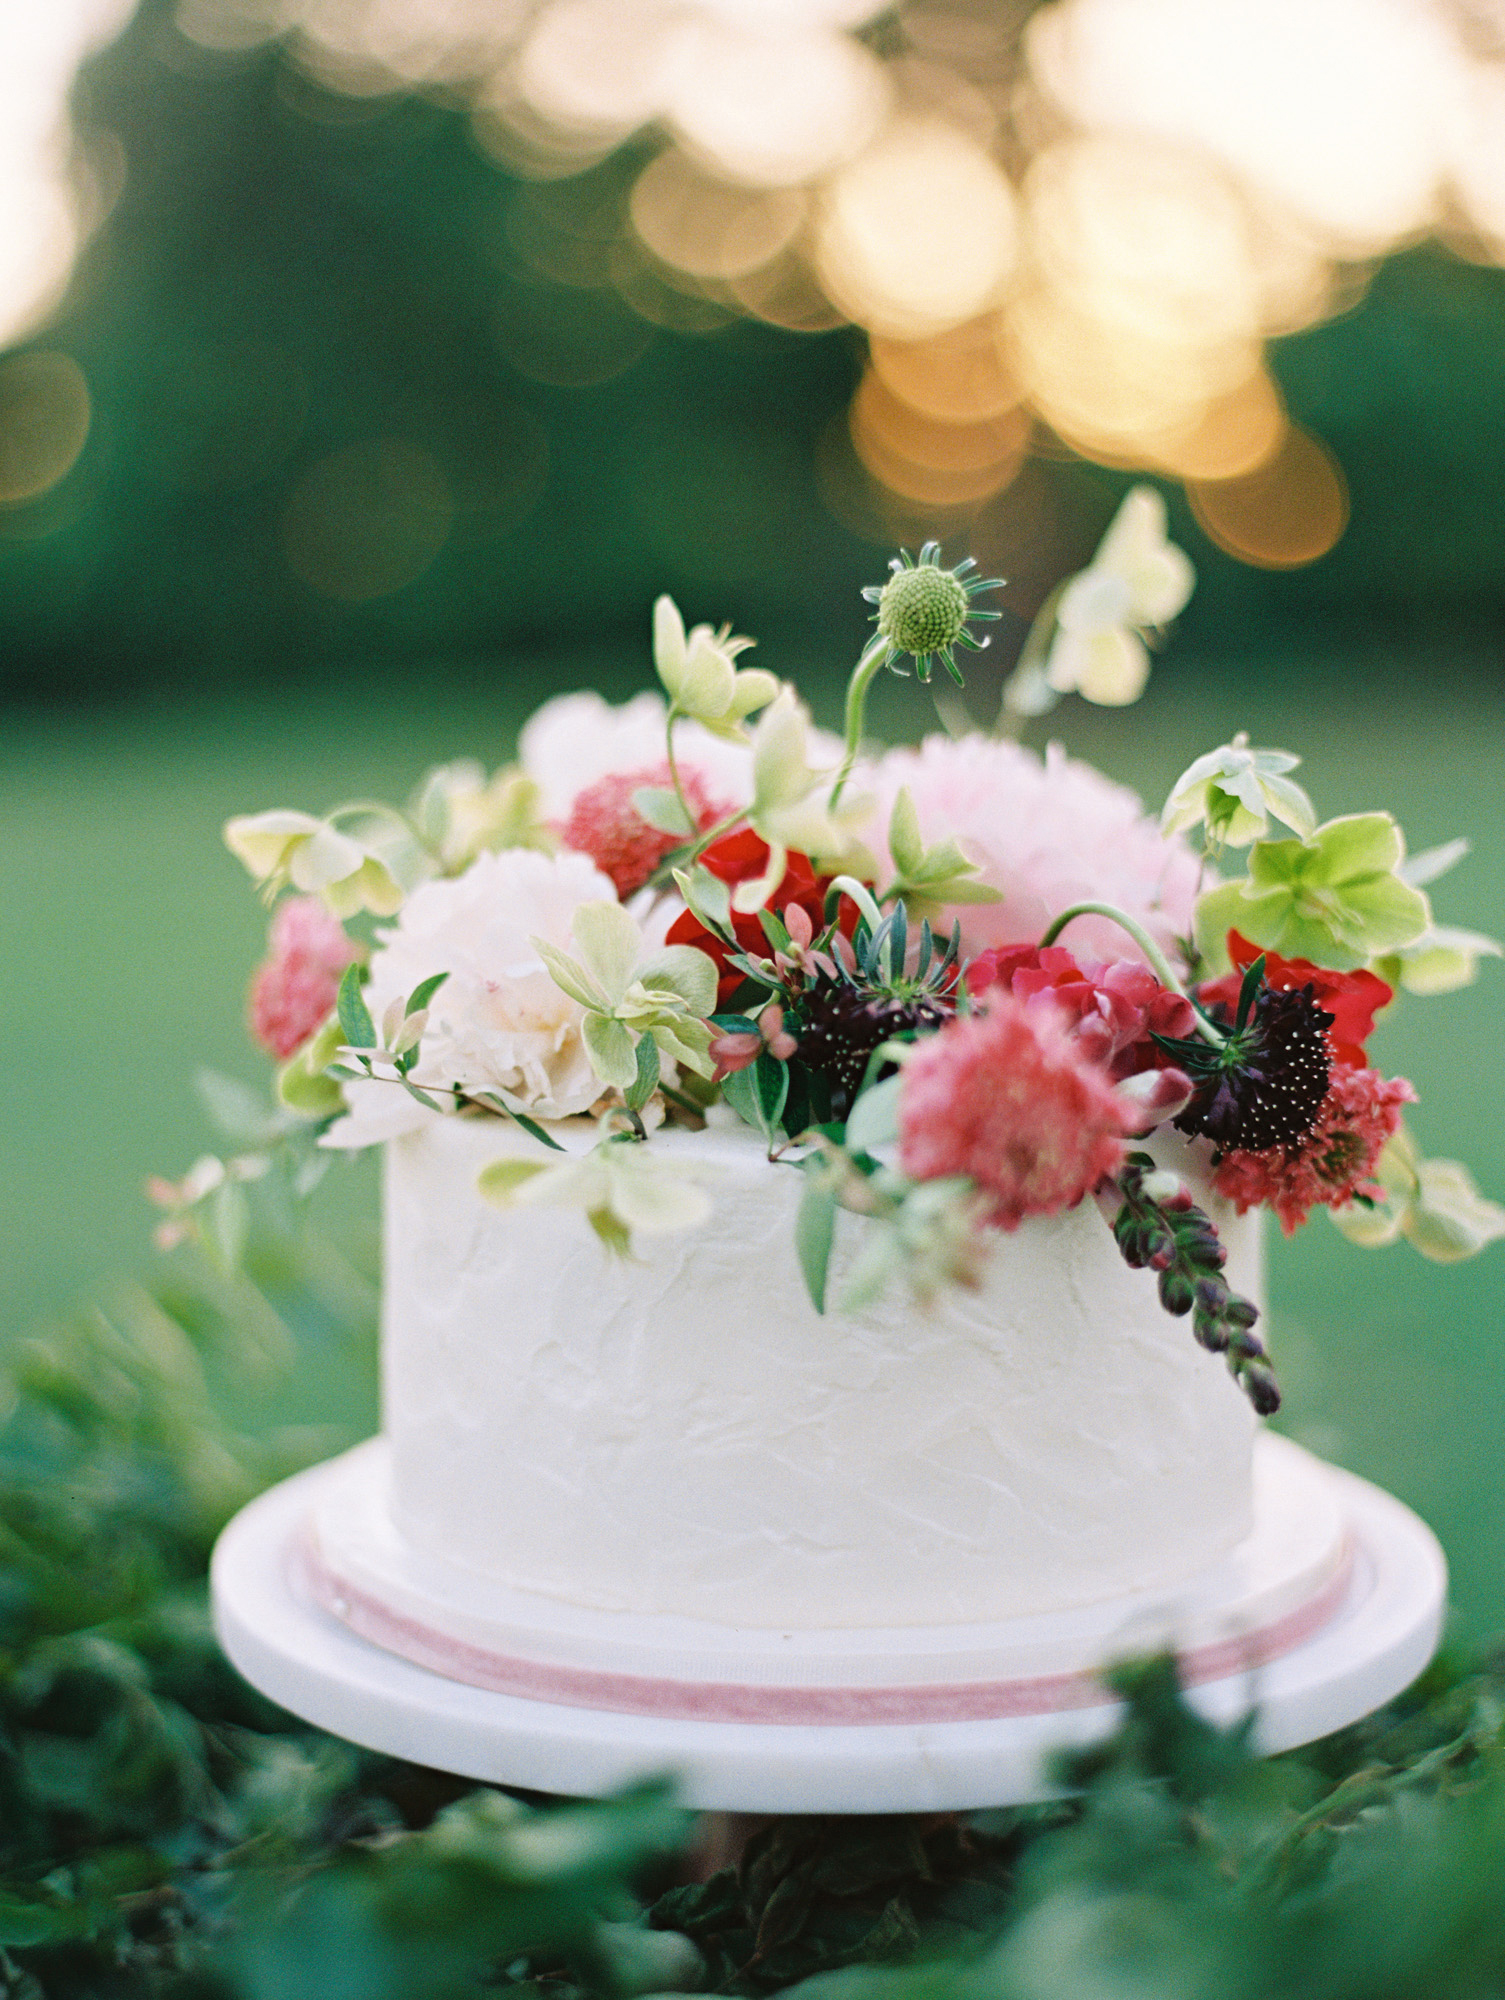 The two smaller single-tier cakes, also by Amy Cakes, were simply iced and topped with fresh blooms.